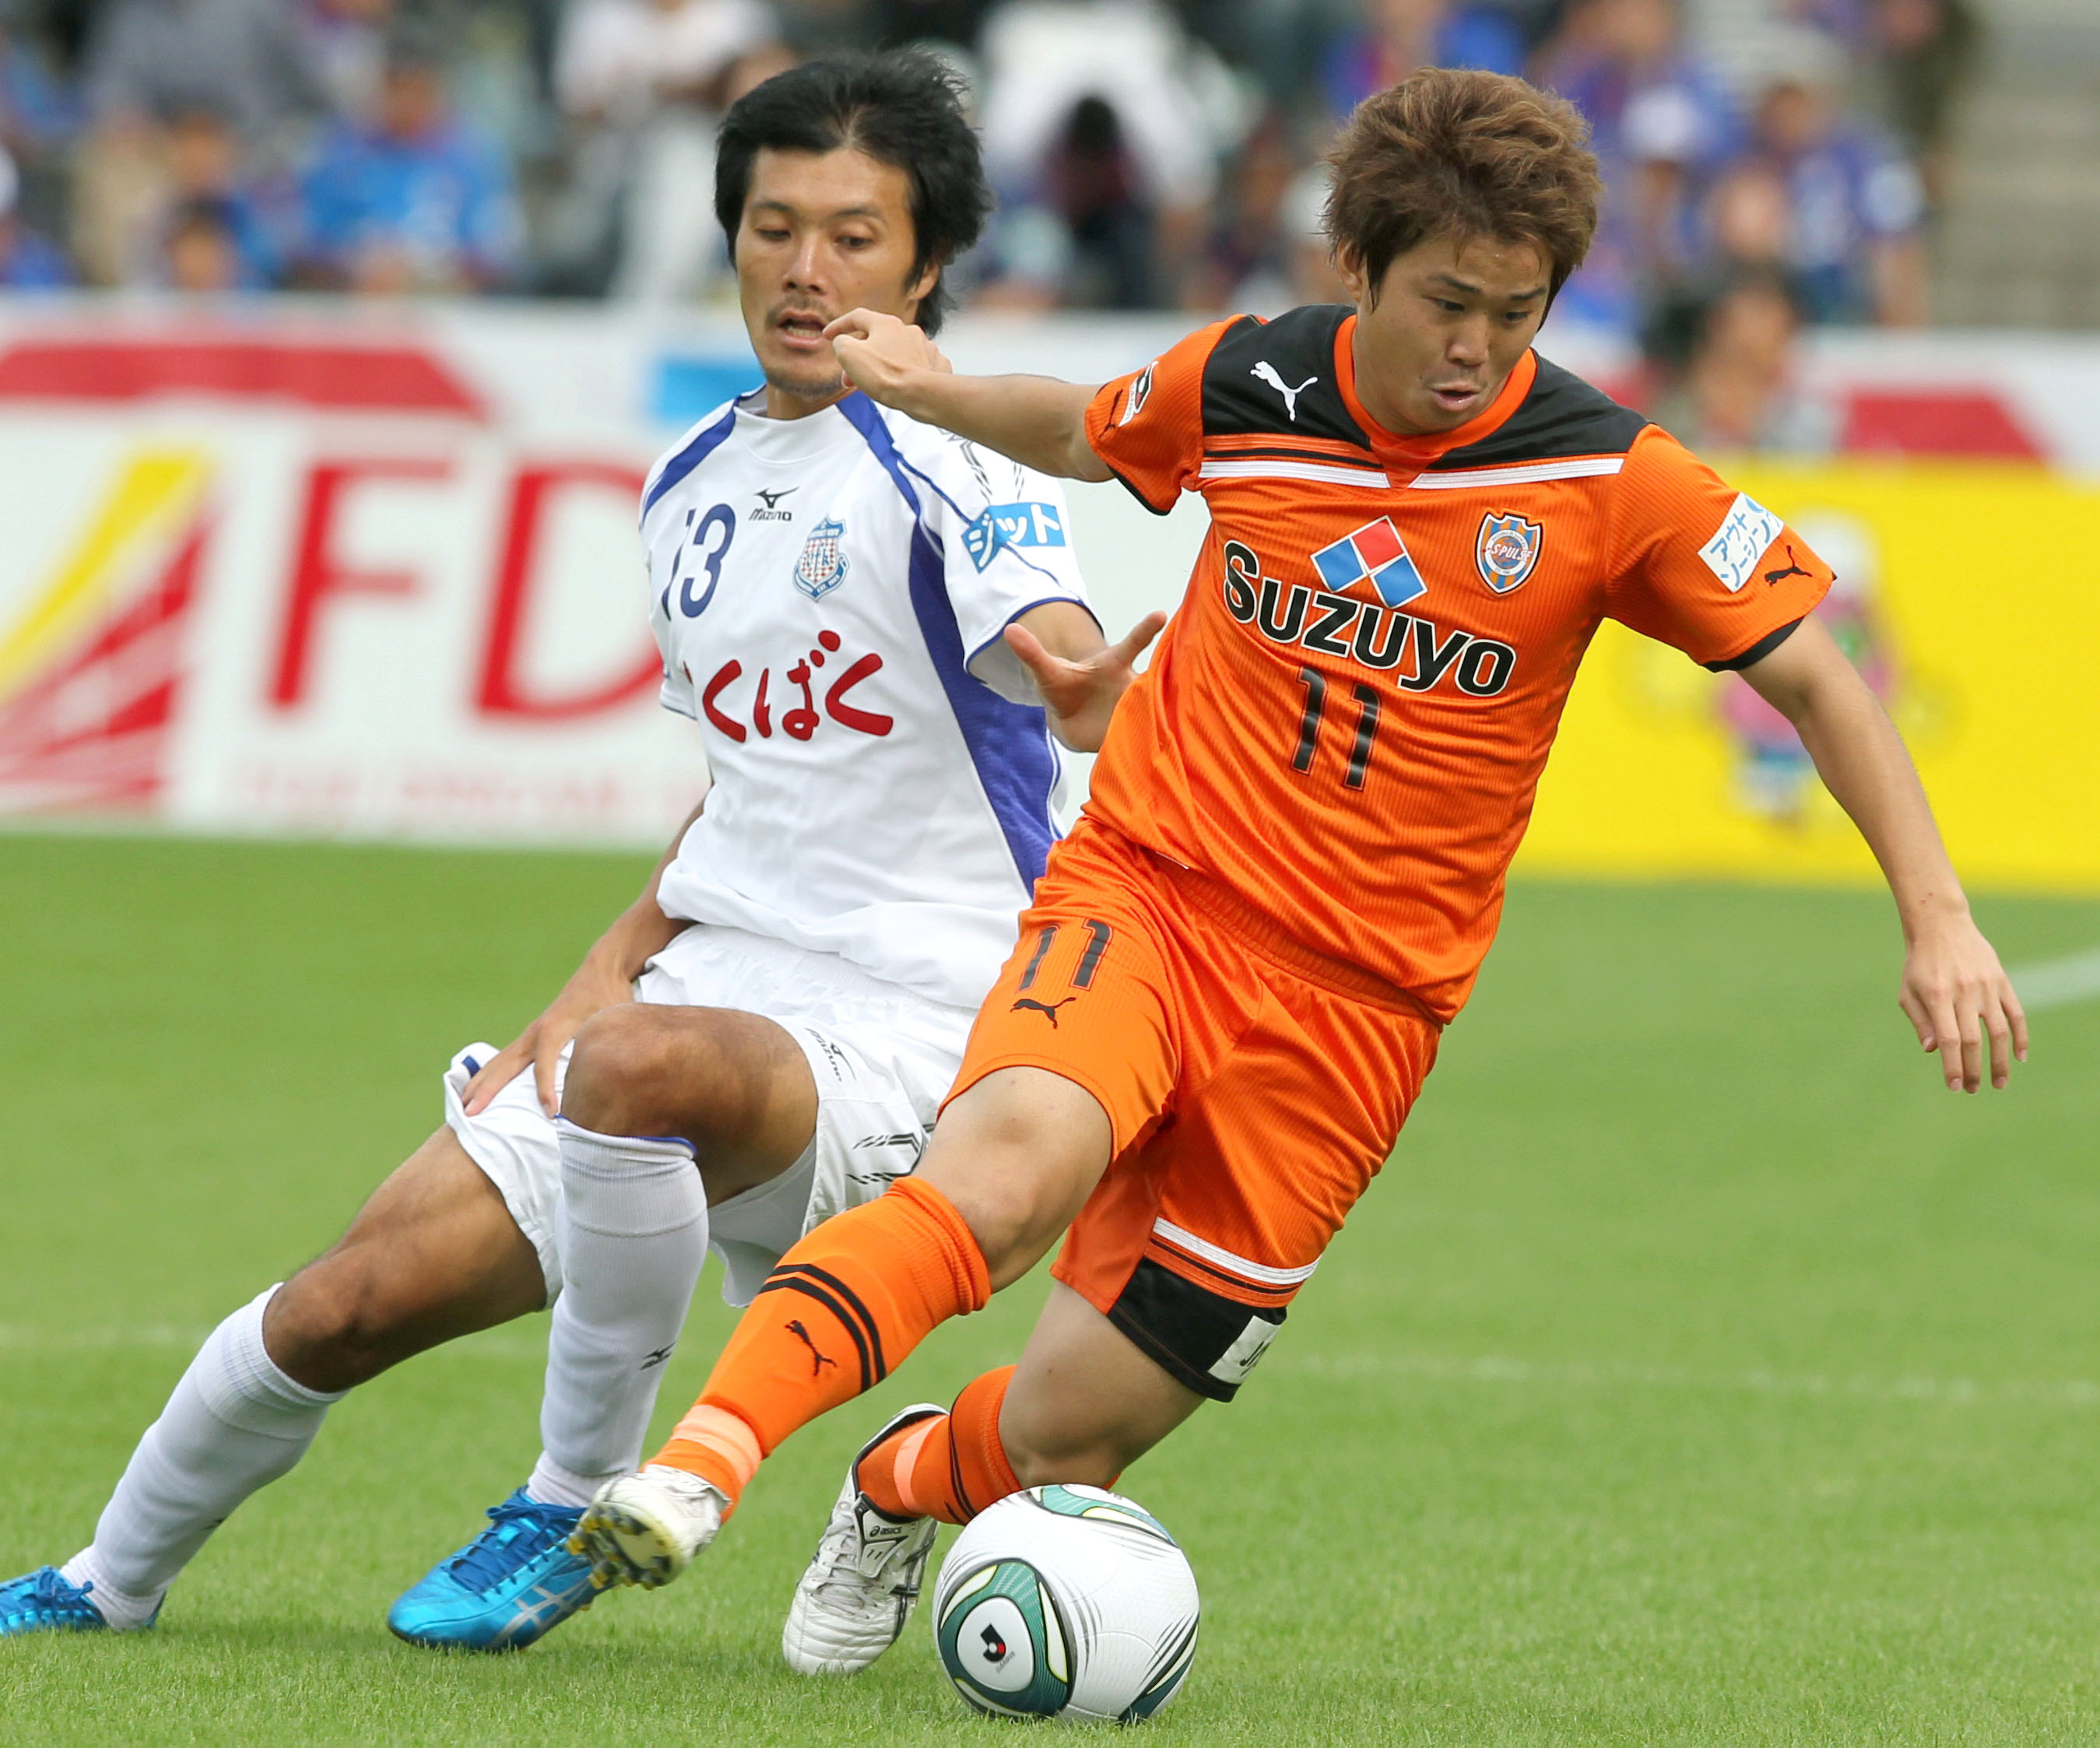 Stepping up: Shimizu S-Pulse is counting on forward Genki Omae (right) for a strong contribution this season in the J.?League. | KYODO